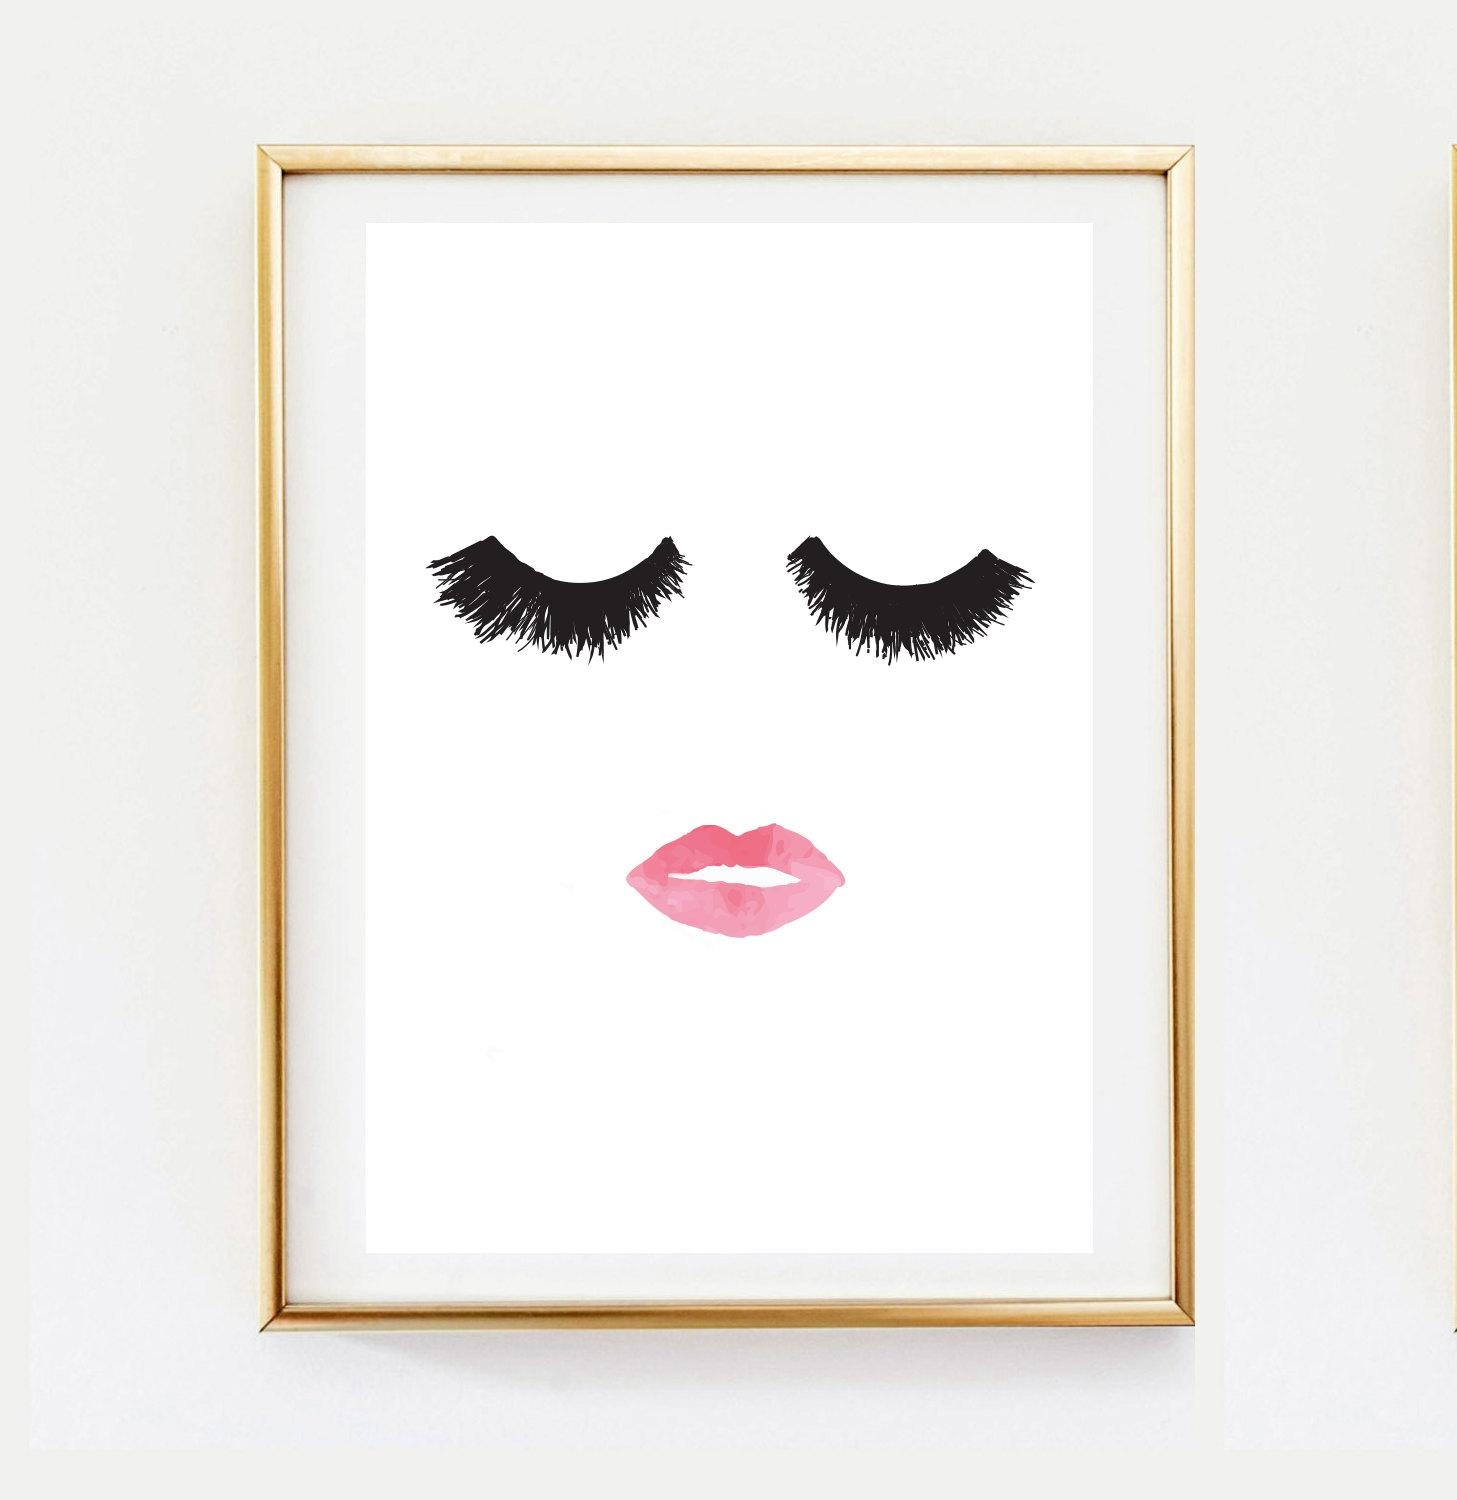 Decor : 18 Branded Adorable Glamorous Wall Art Ideas Coco Chanel With Regard To Glamorous Wall Art (View 6 of 20)